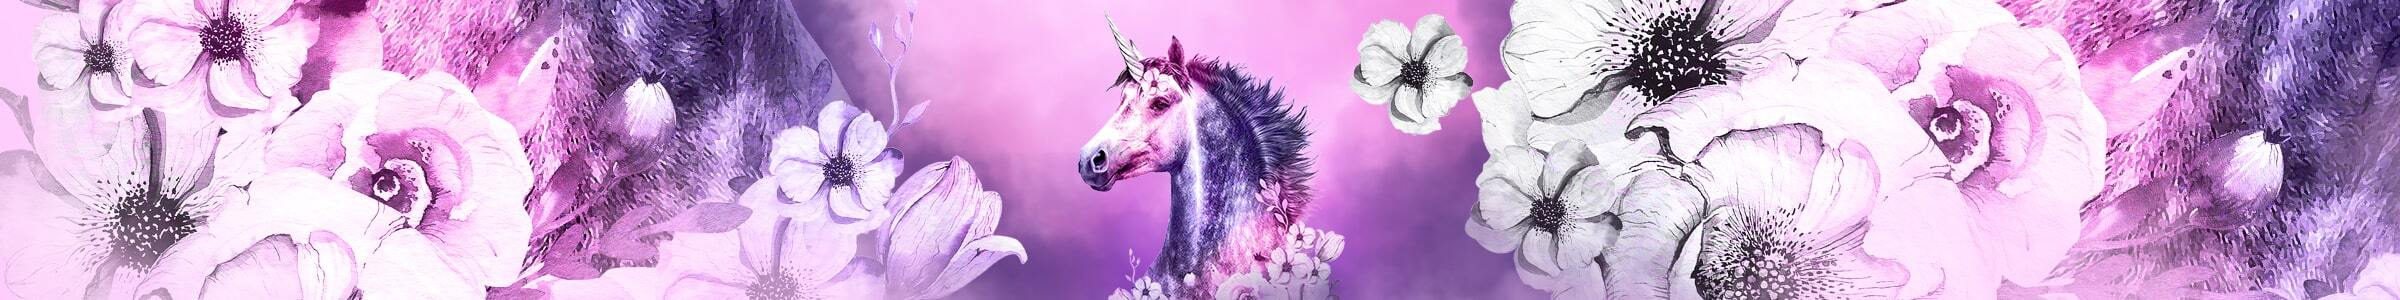 Category_Teaser_Header_Einhorn_2400x300